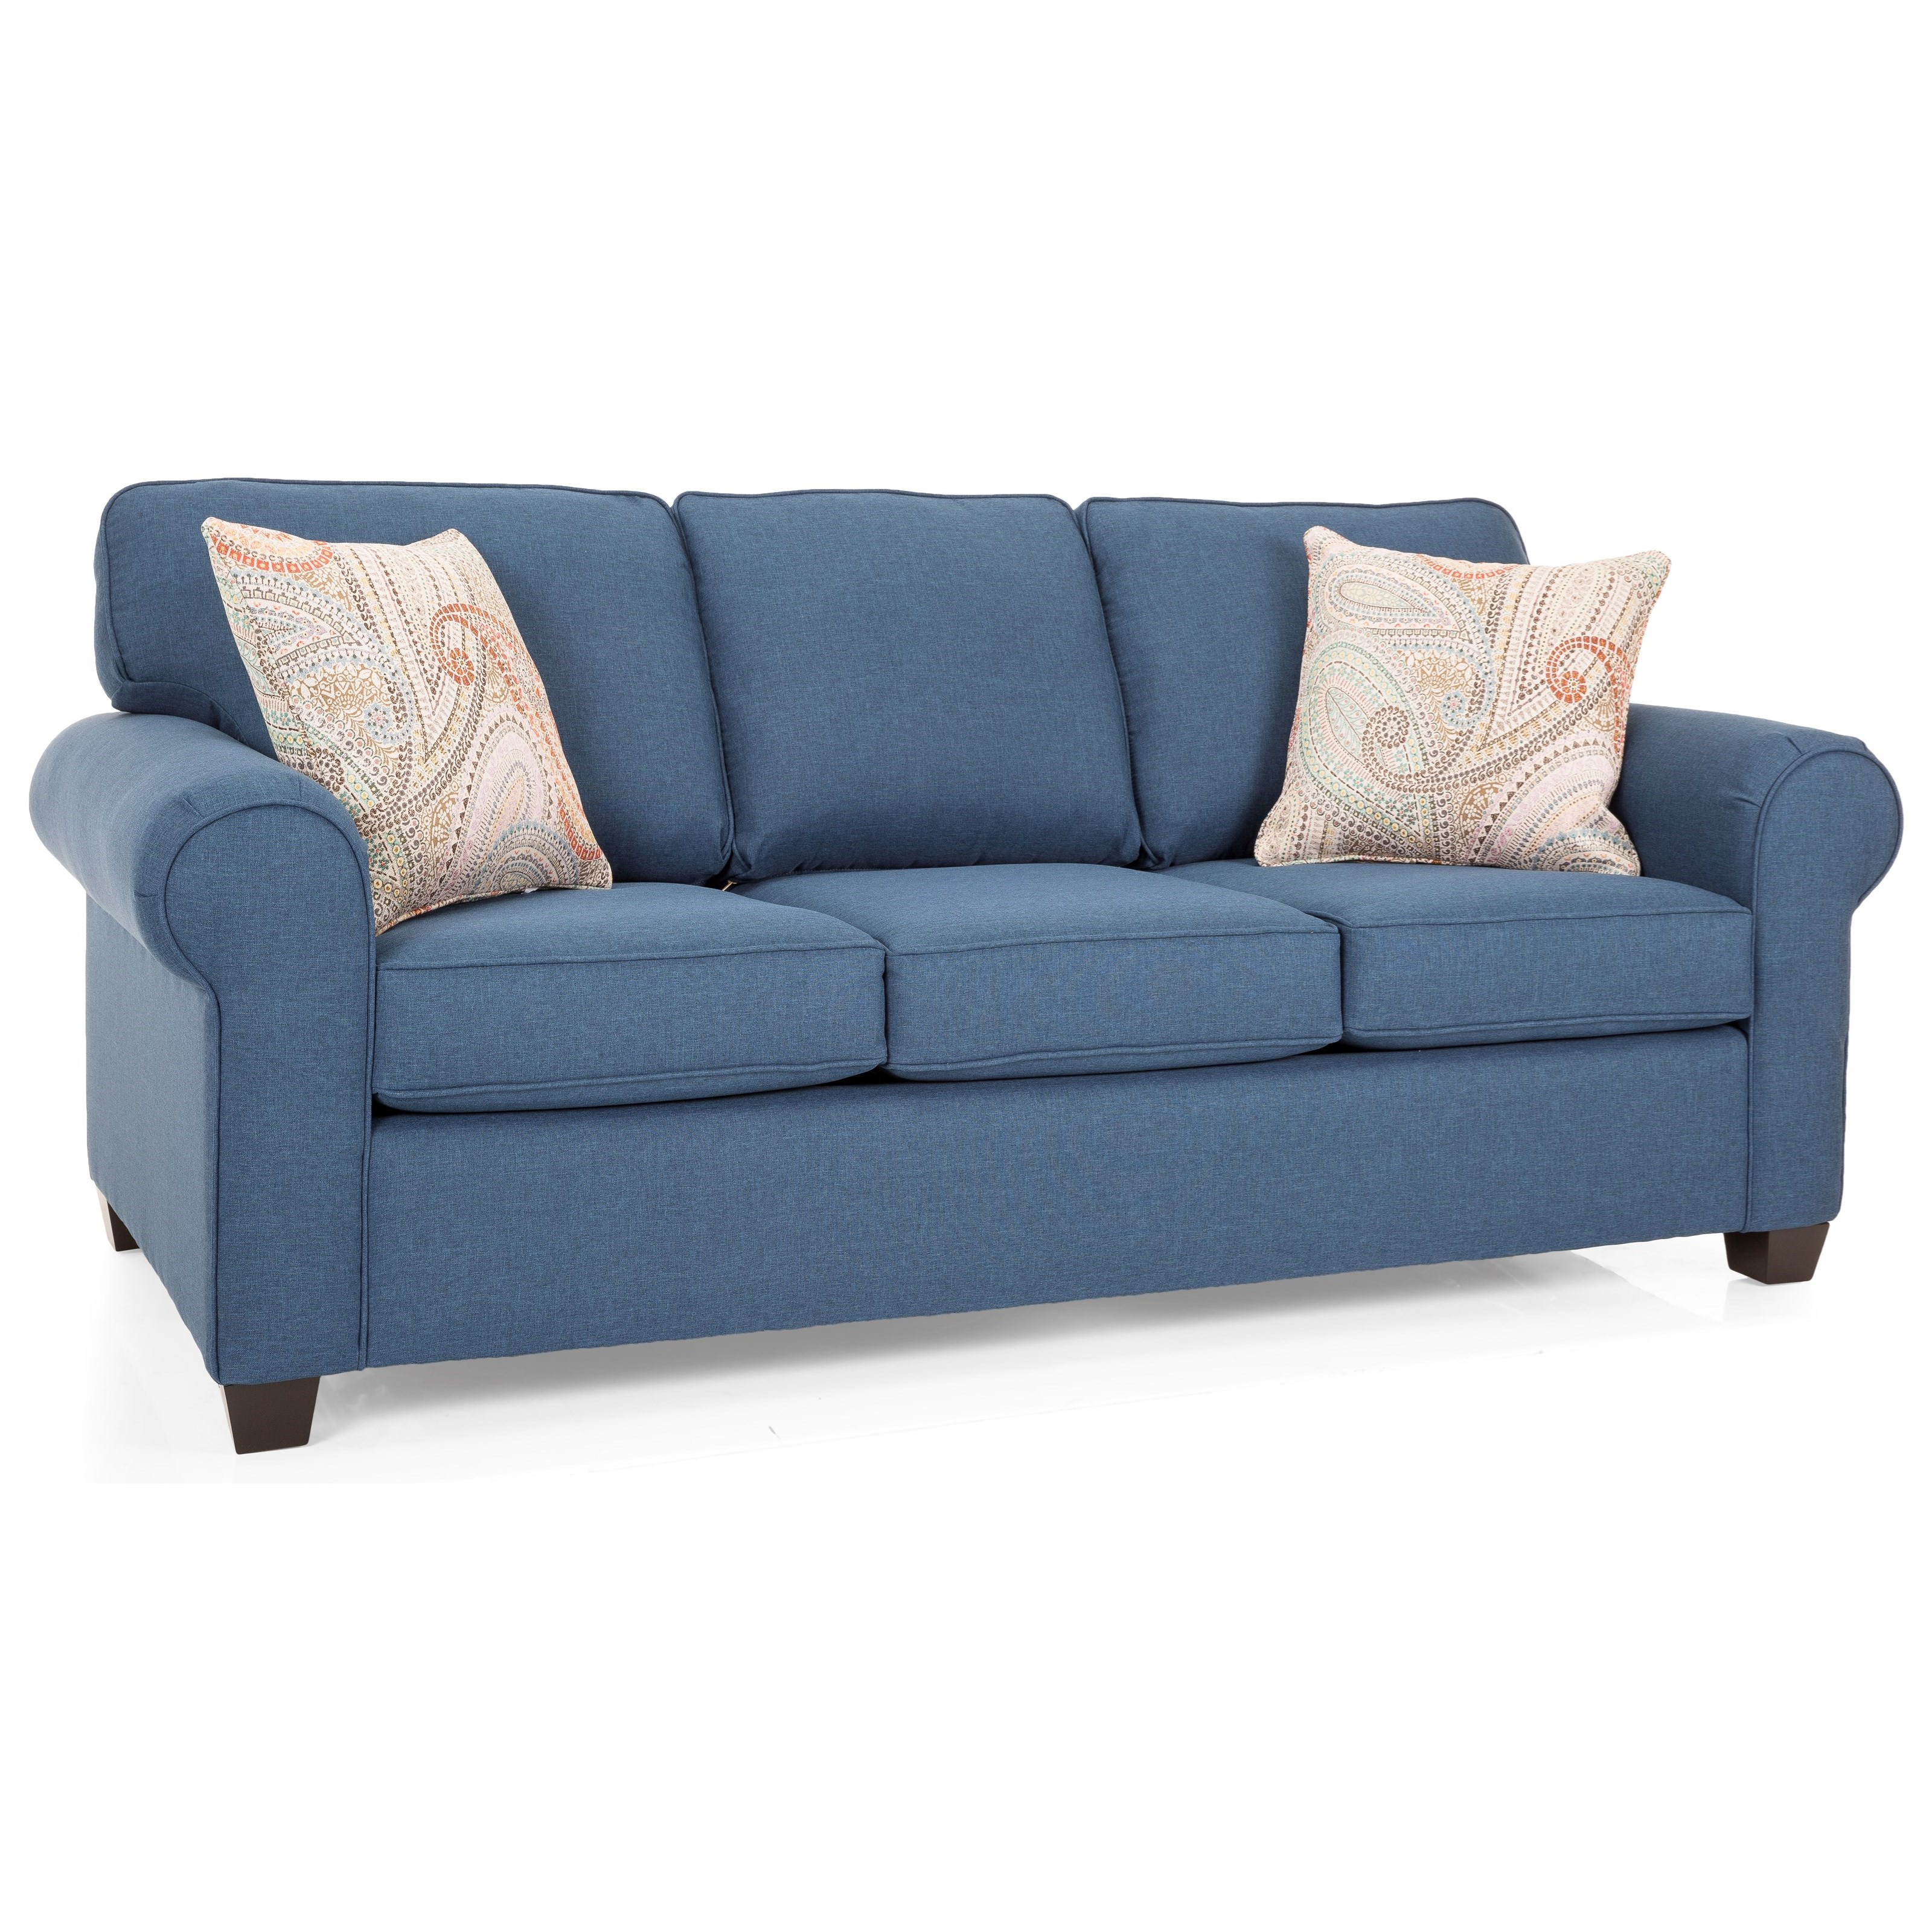 2179 Queen Bed Sofa by Decor-Rest at Reid's Furniture